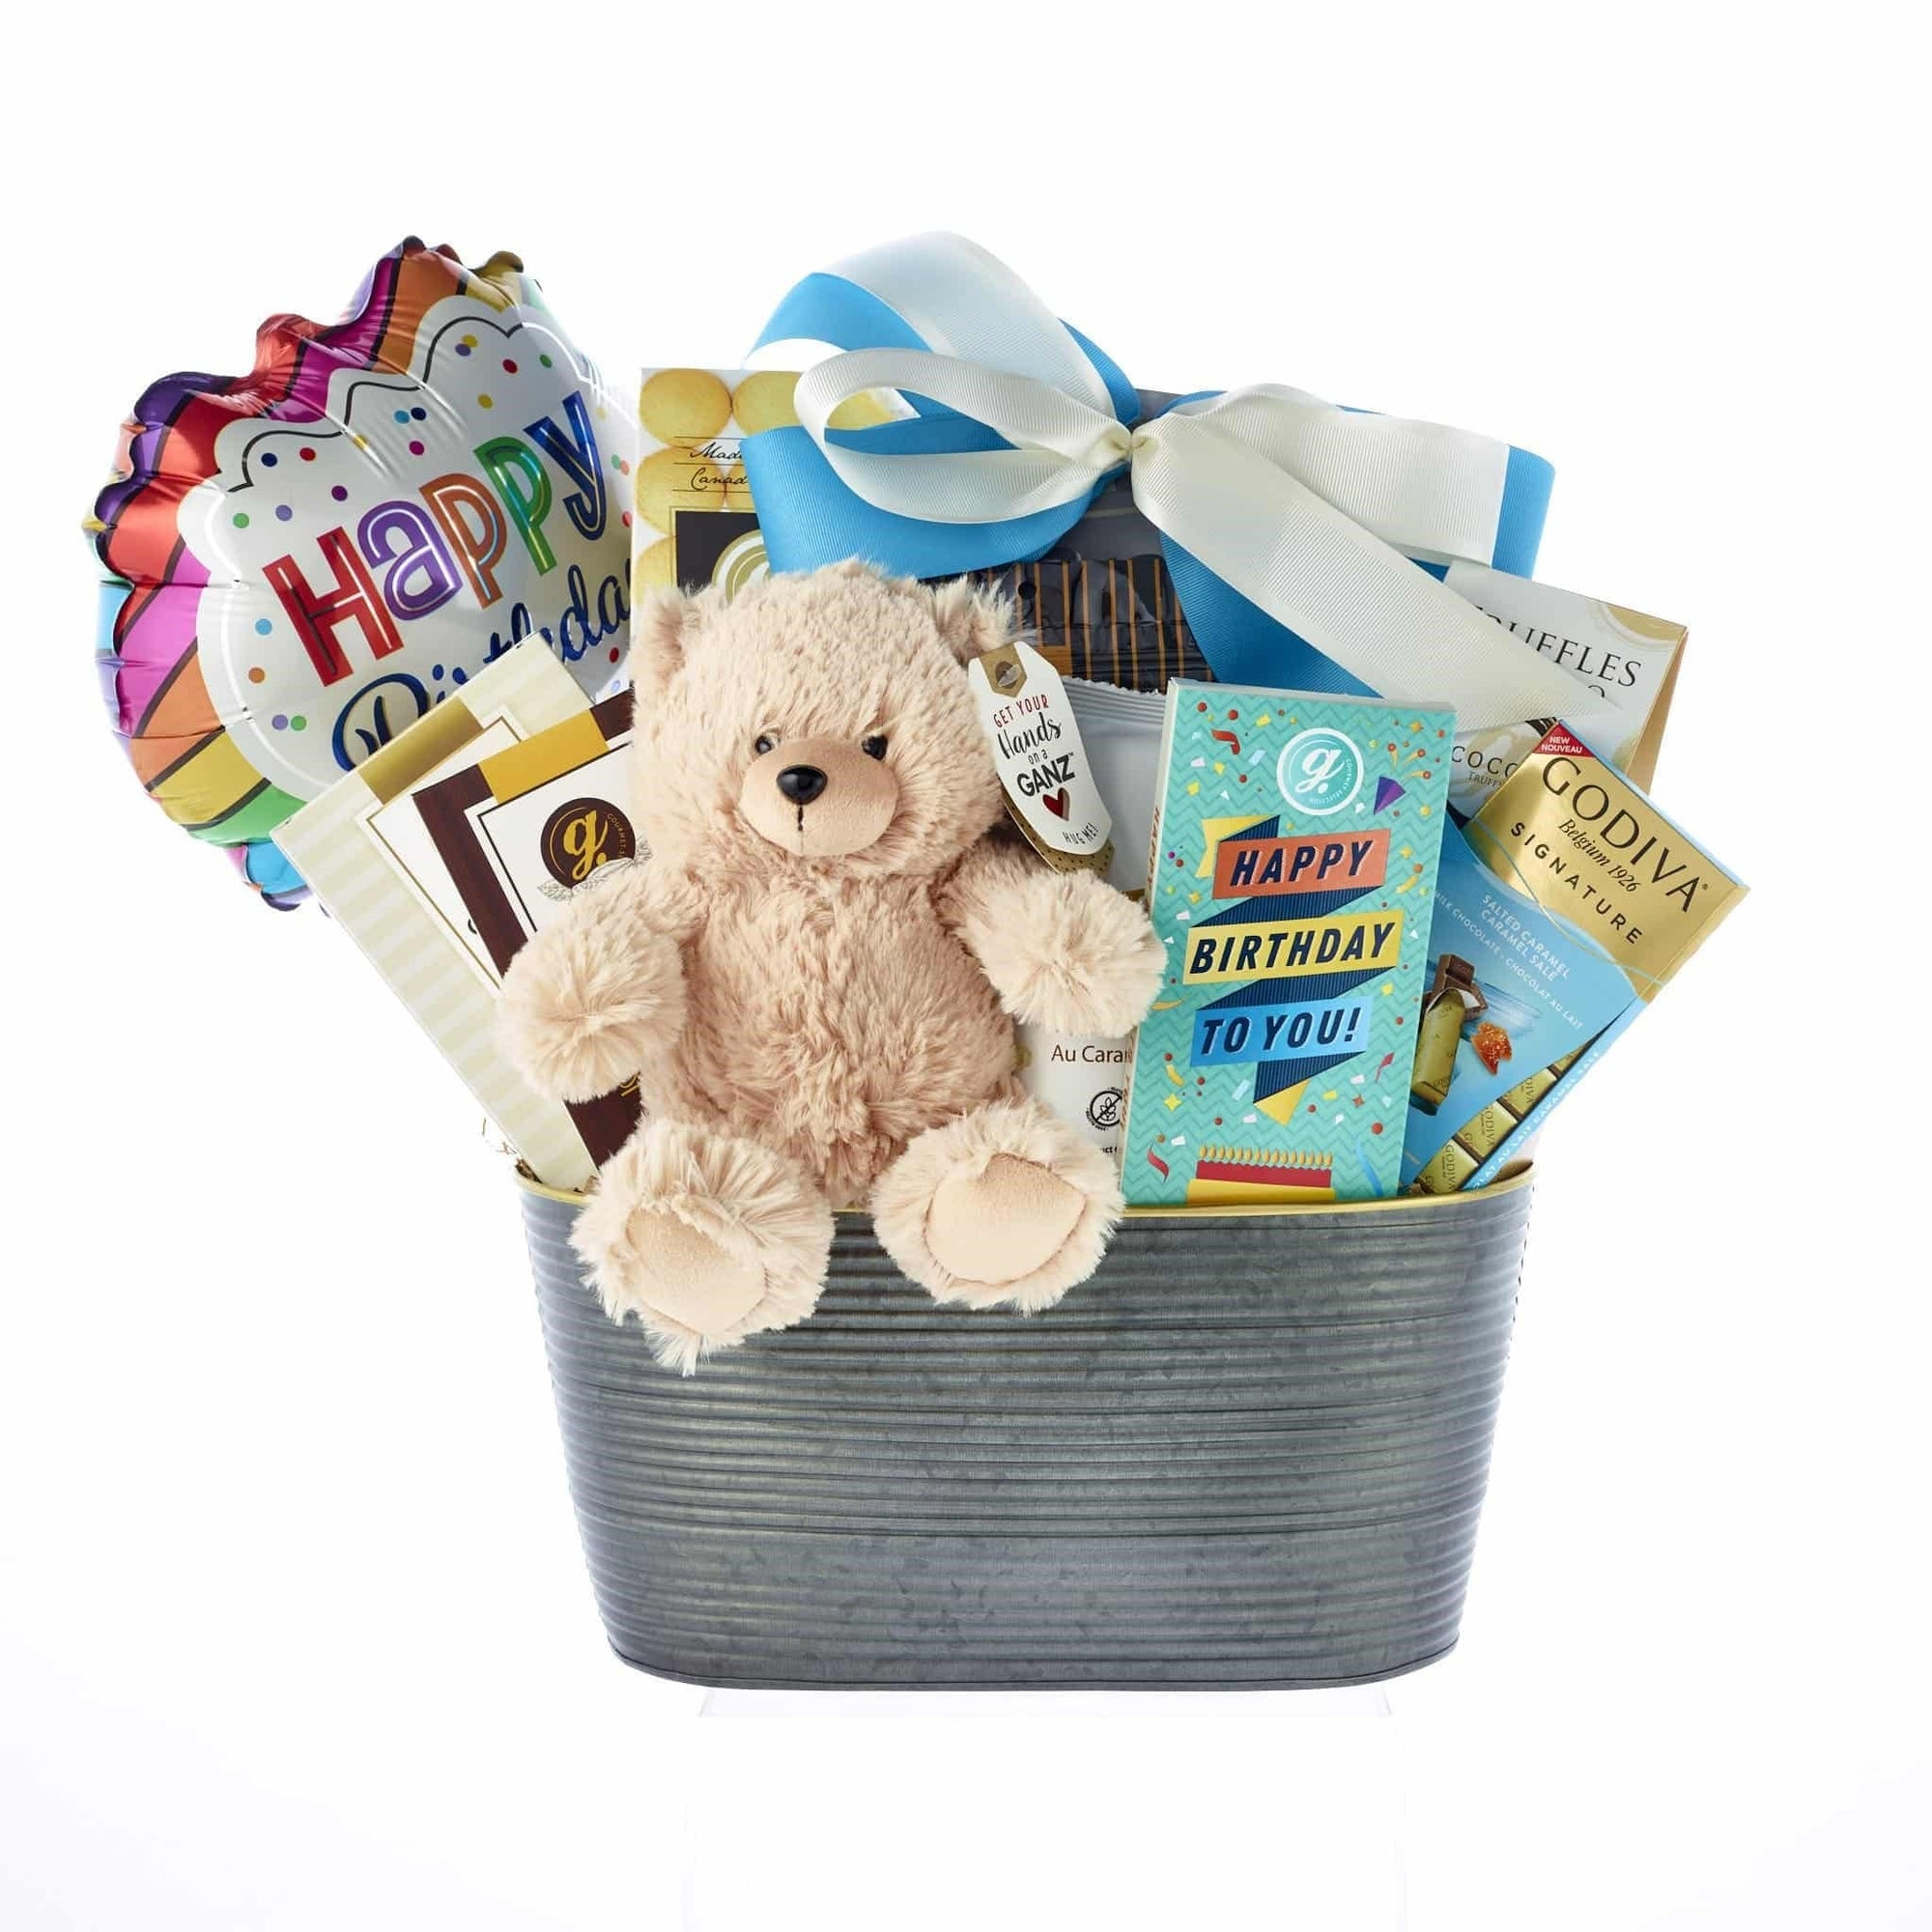 Birthday hamper with plush, treats and balloon